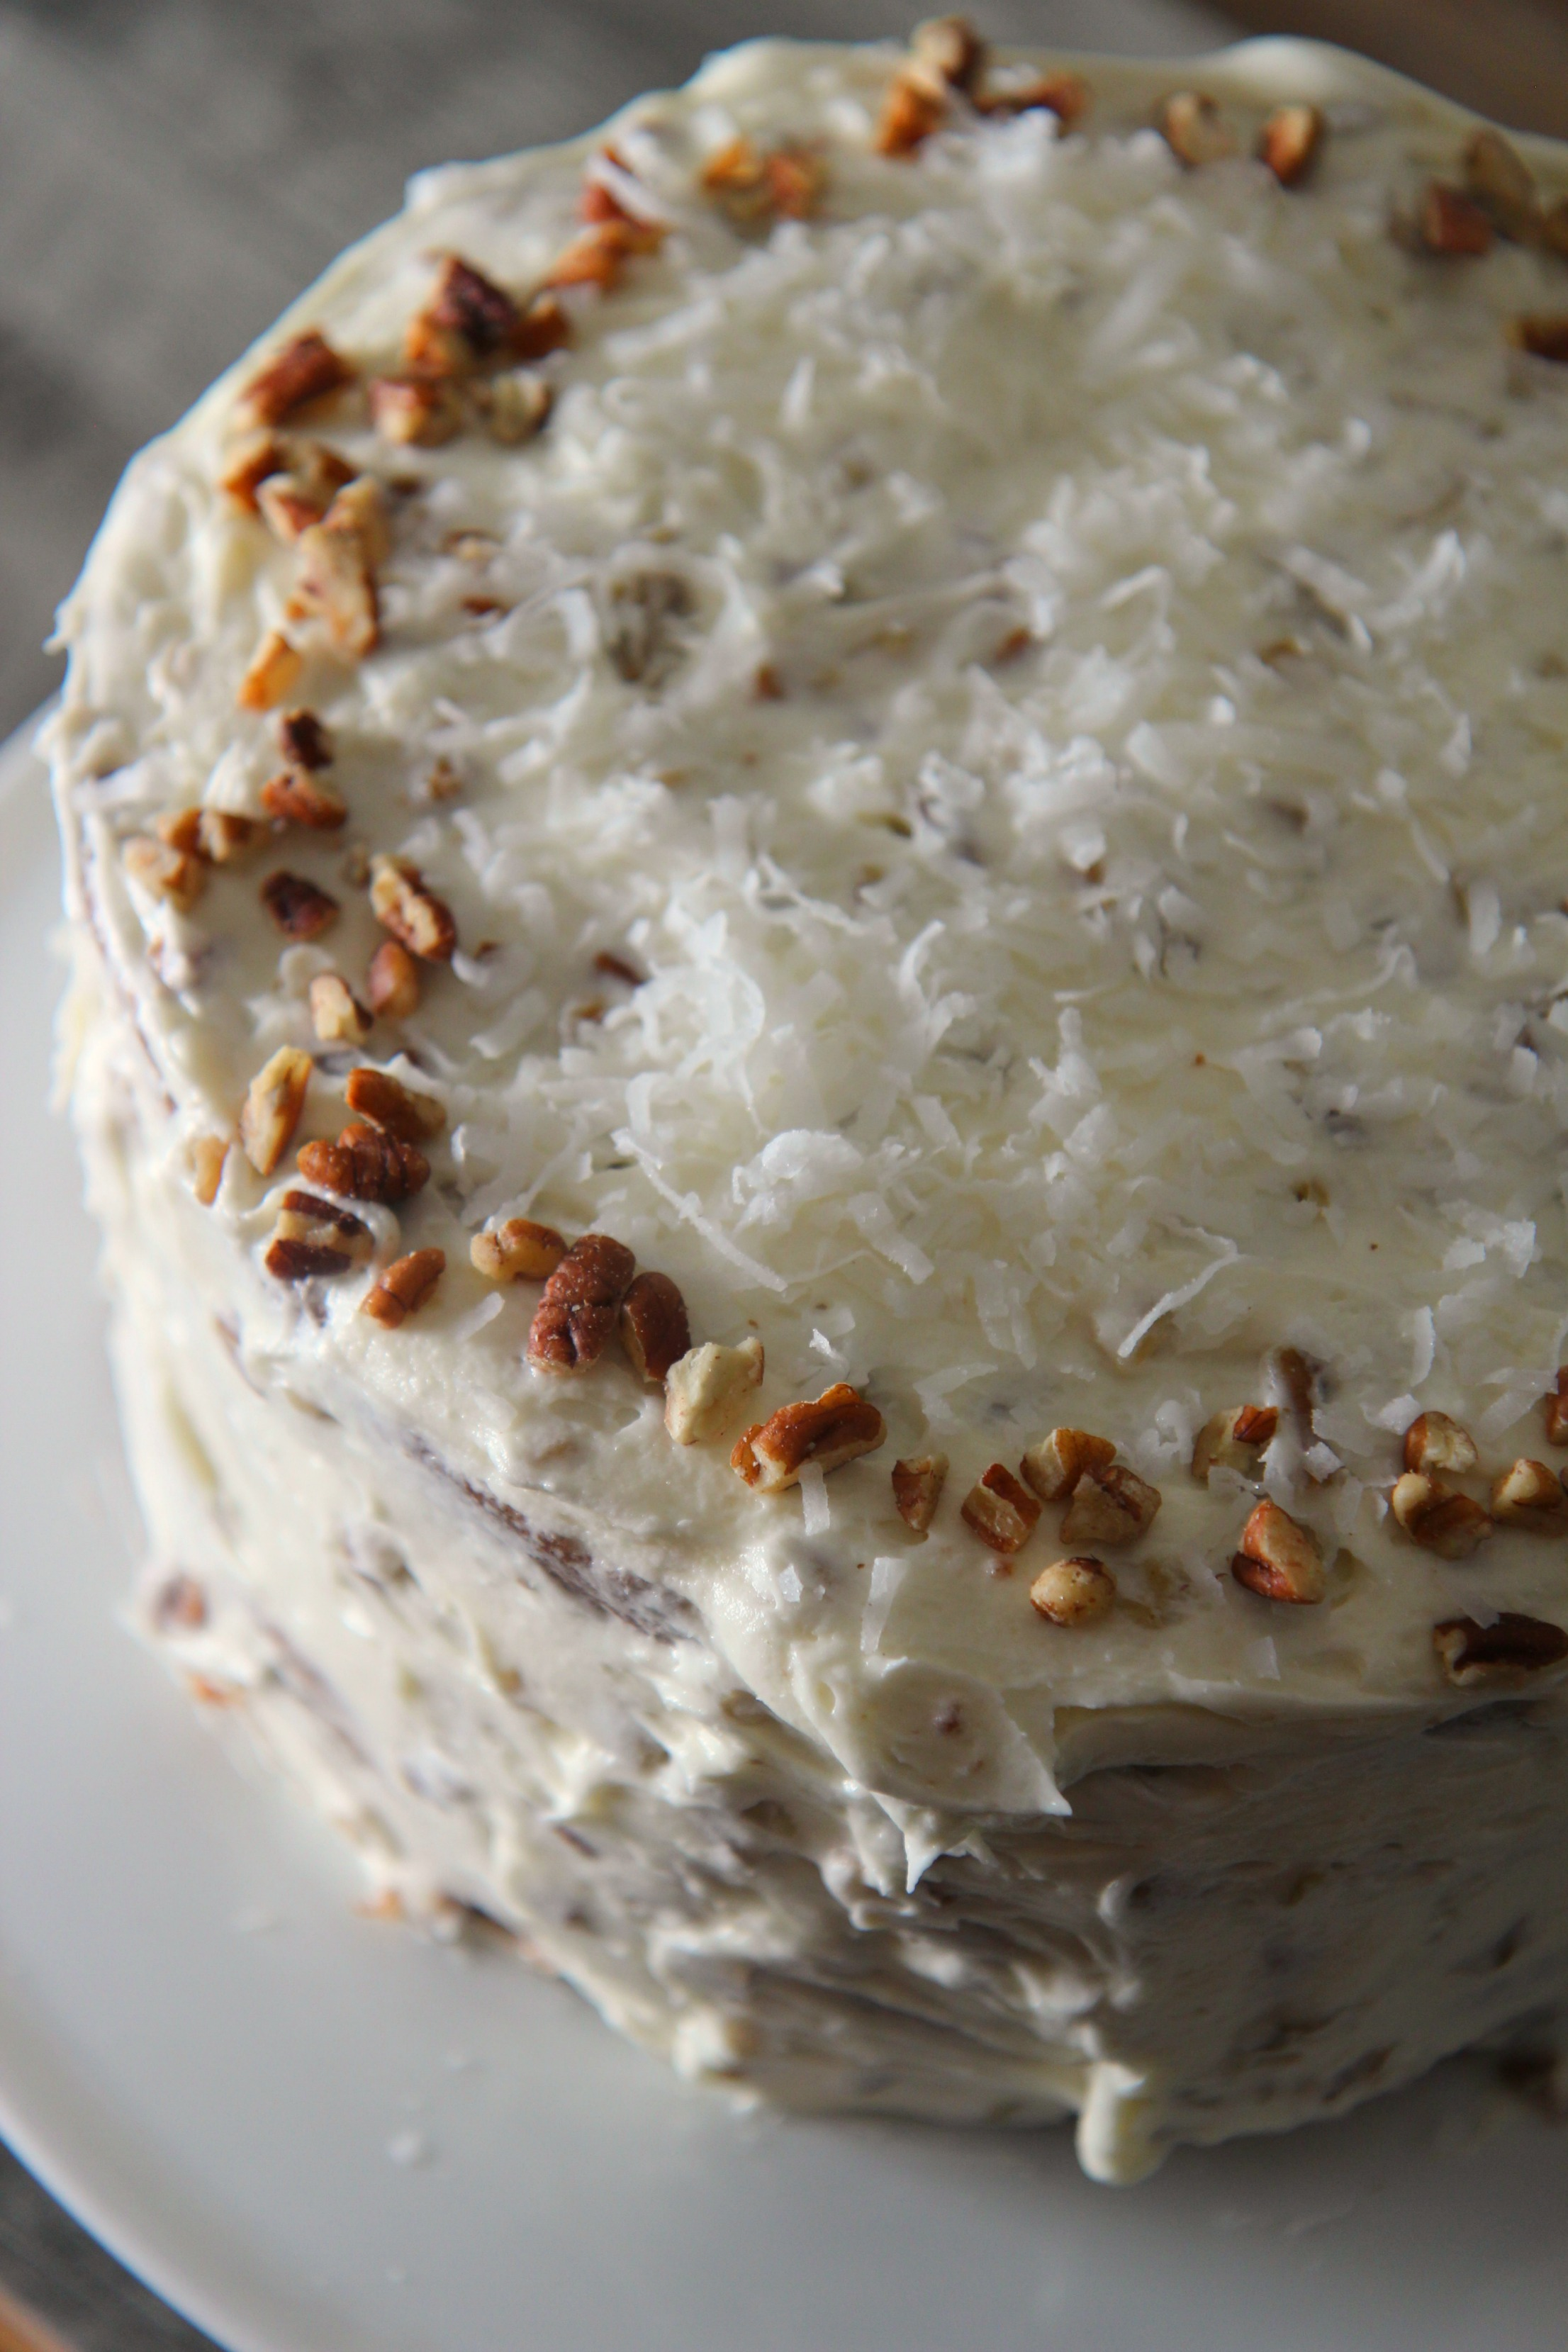 This Italian Cream Cake is nutty and sweet!